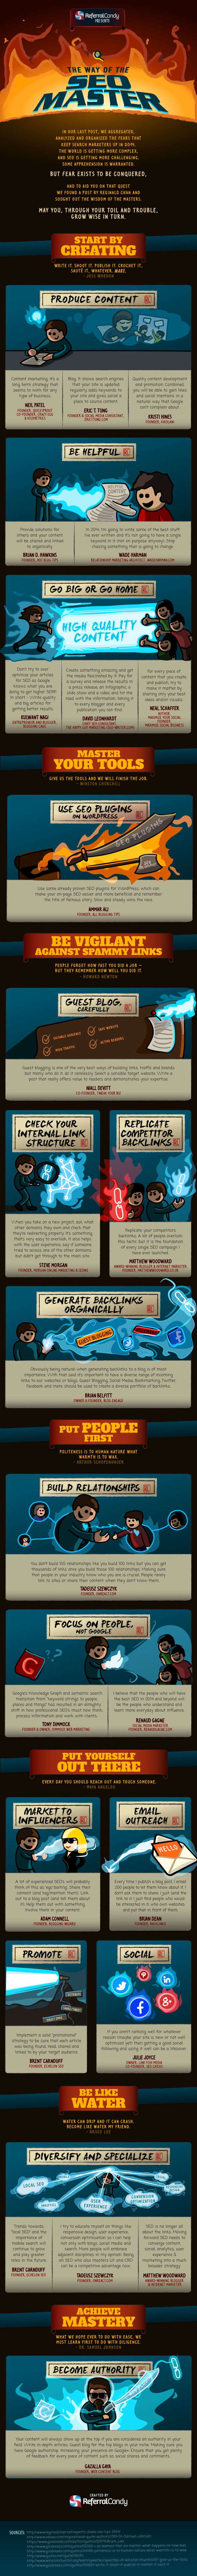 the way of the seo master infographic referral candy